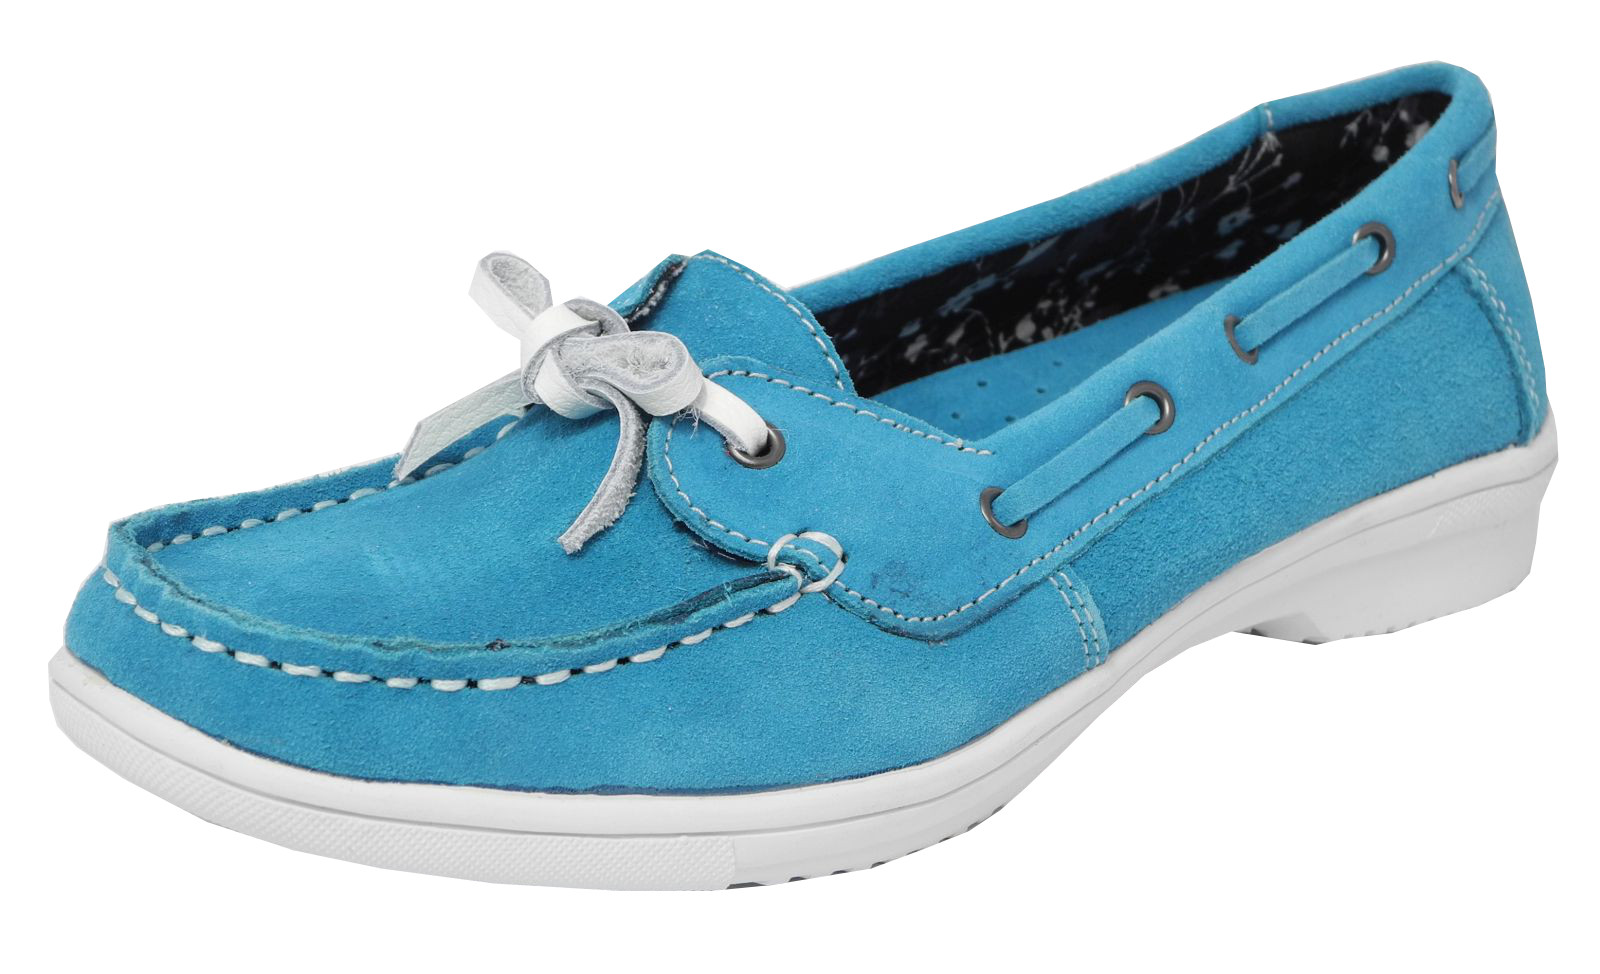 Men's Boat Shoes and Deck Shoes. Vacation in style this year with our collection of classic men's boat shoes. Browse our traditional leather and suede boat shoe styles, as well as our more relaxed slip-on deck shoes.